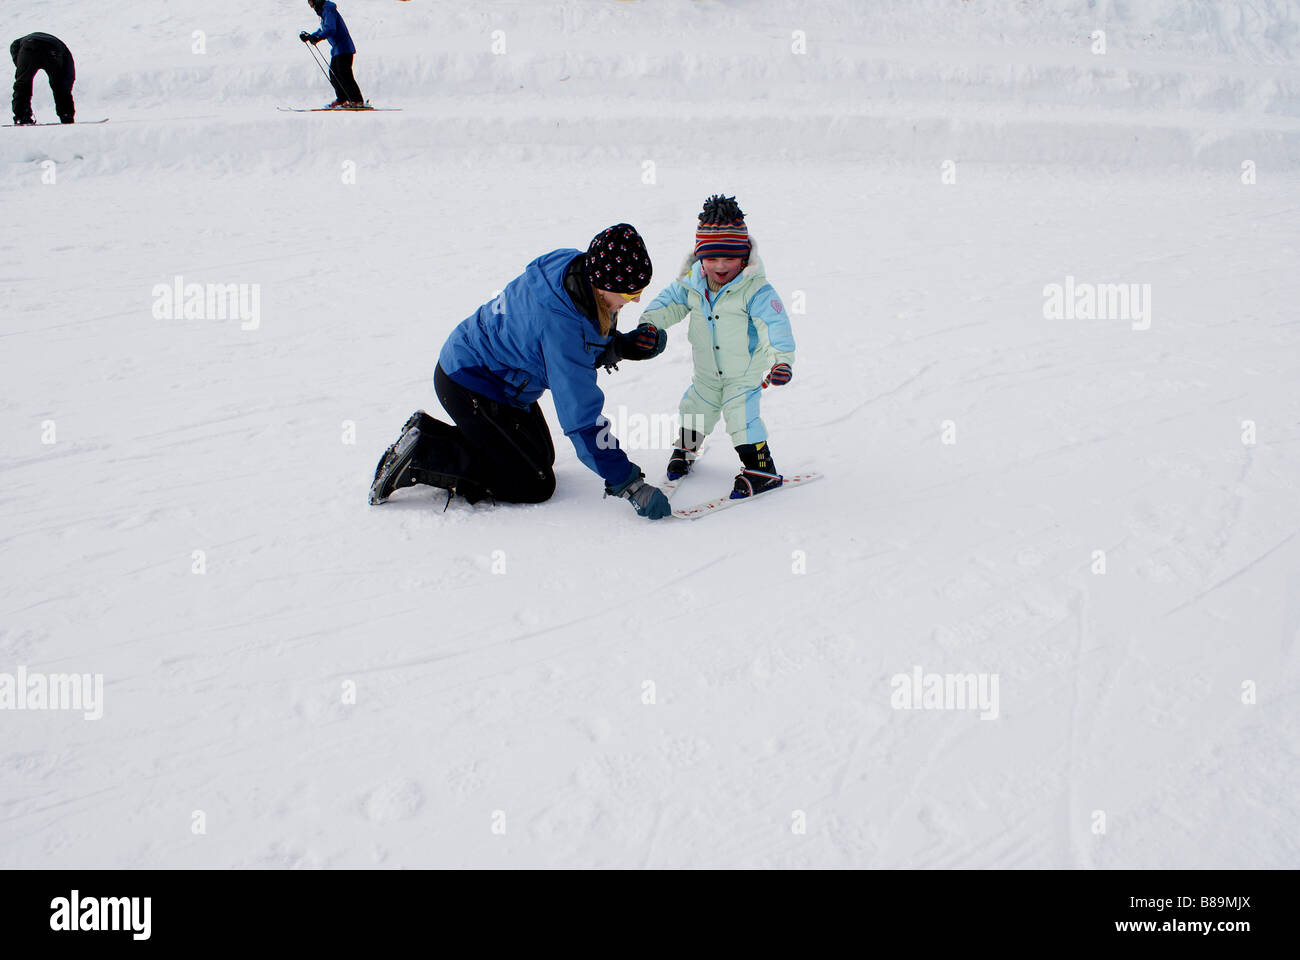 Ski instructor showing  2 year-old girl the snowplow position on beginner's slope at Snoqualmie Summit, Washington - Stock Image